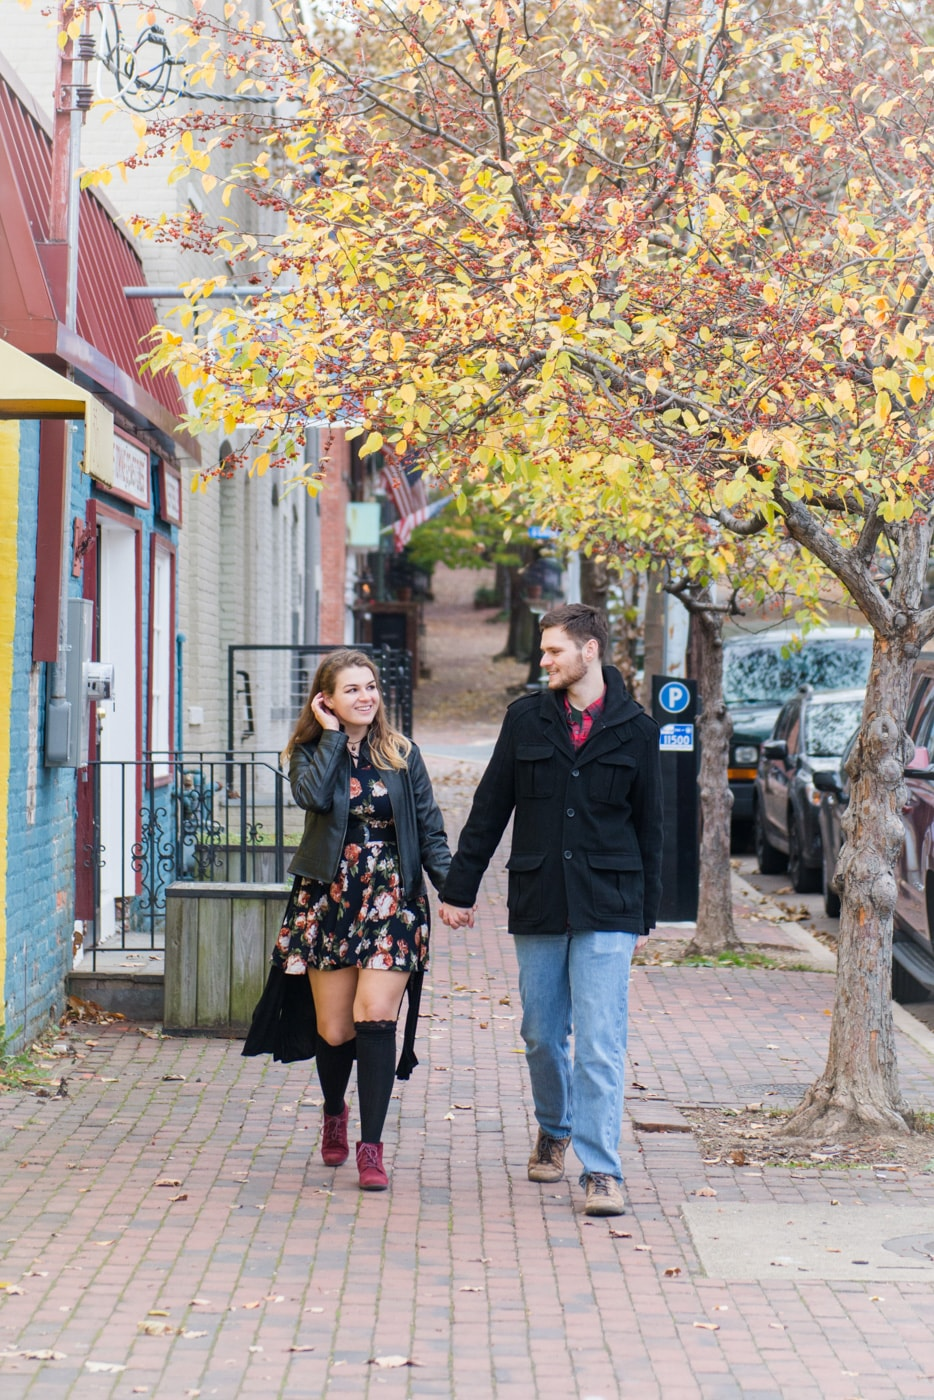 A young couple hold hands as they walk down the street on Old Town Alexandria